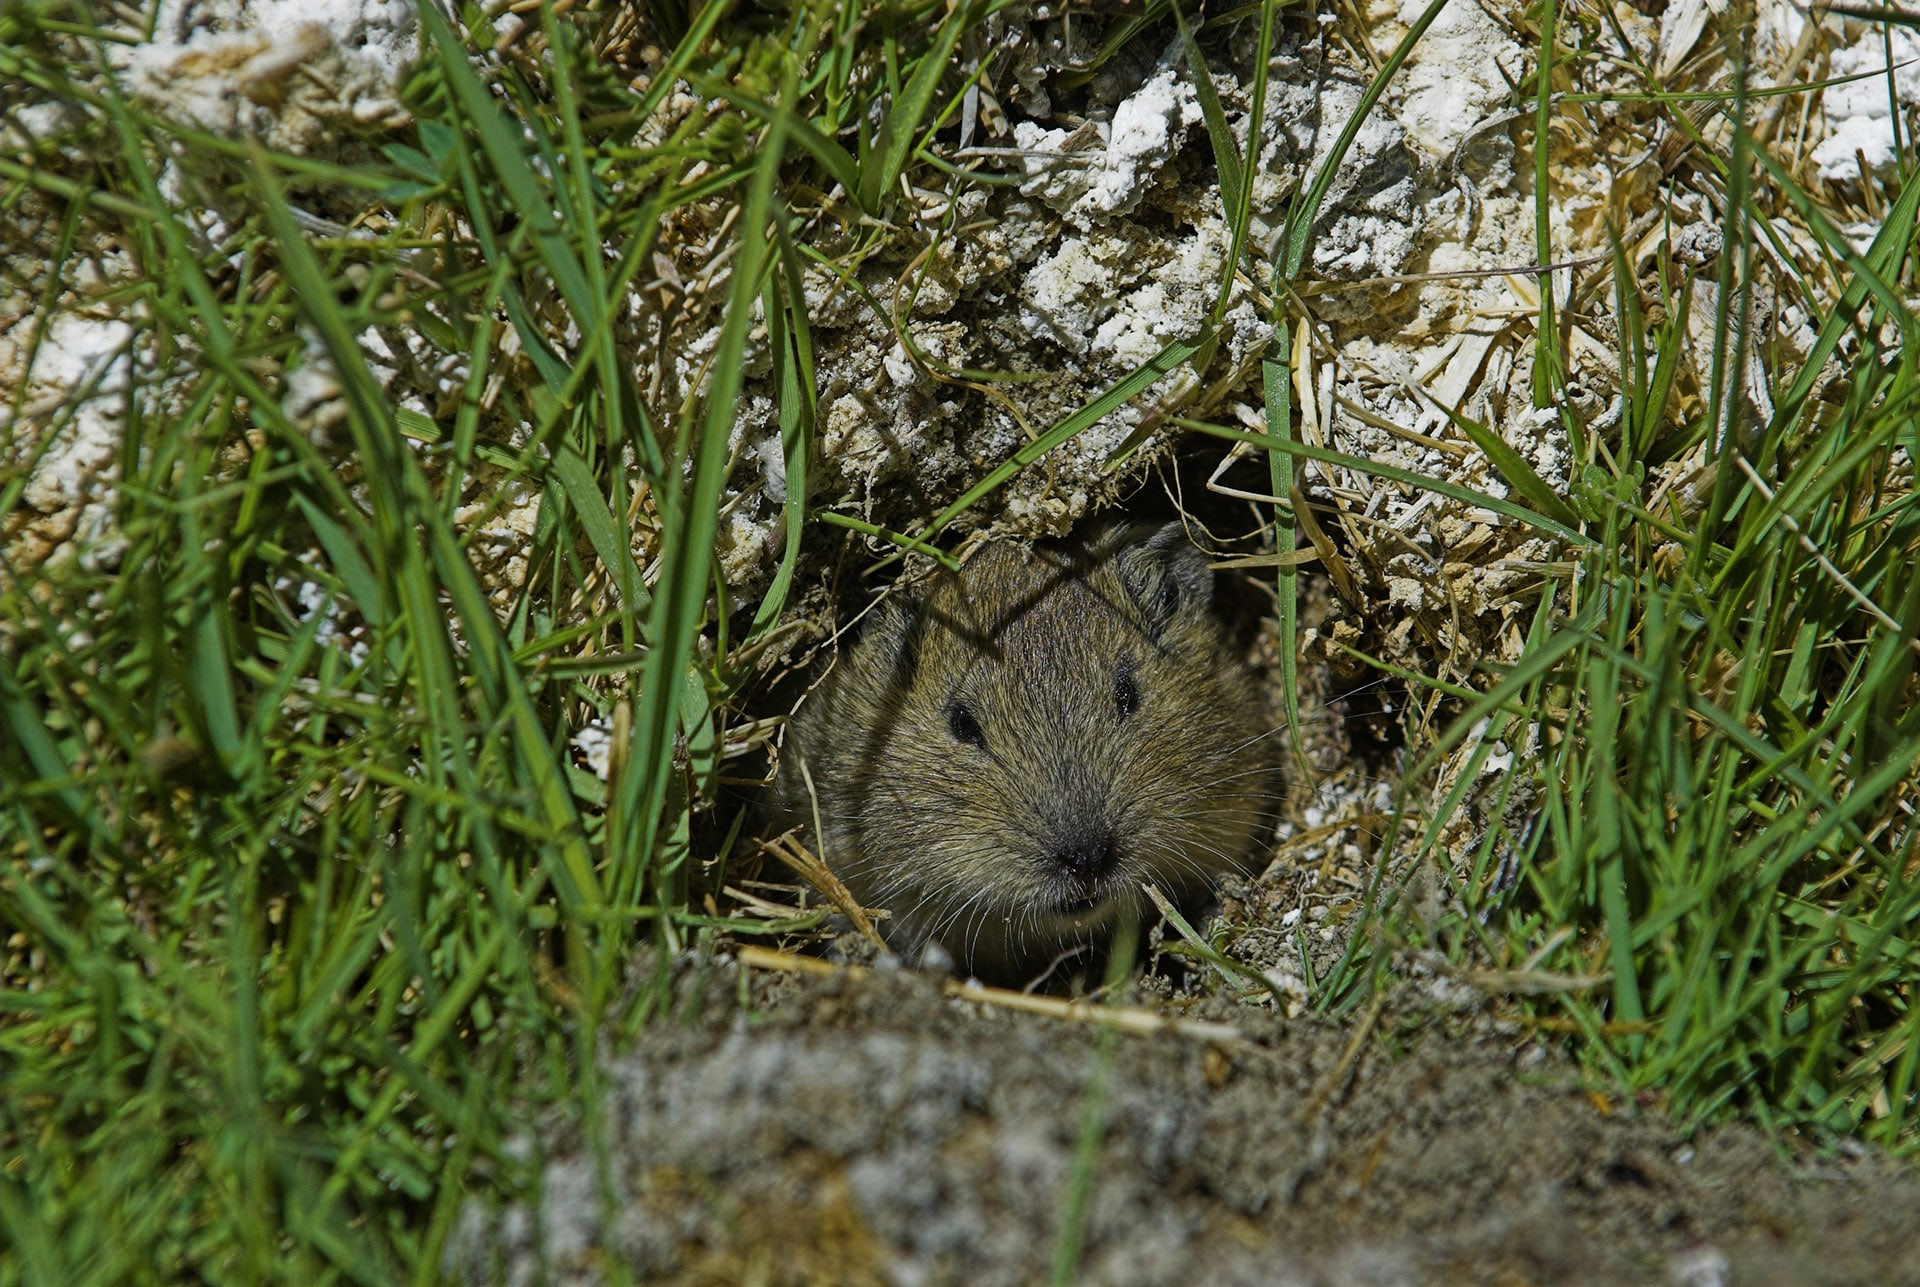 Ladakh pikas are furry animals that look part-rodent, part-rabbit. They live in family groups in the Changthang, in burrows which have multiple entrances to allow for easy escape and entry.